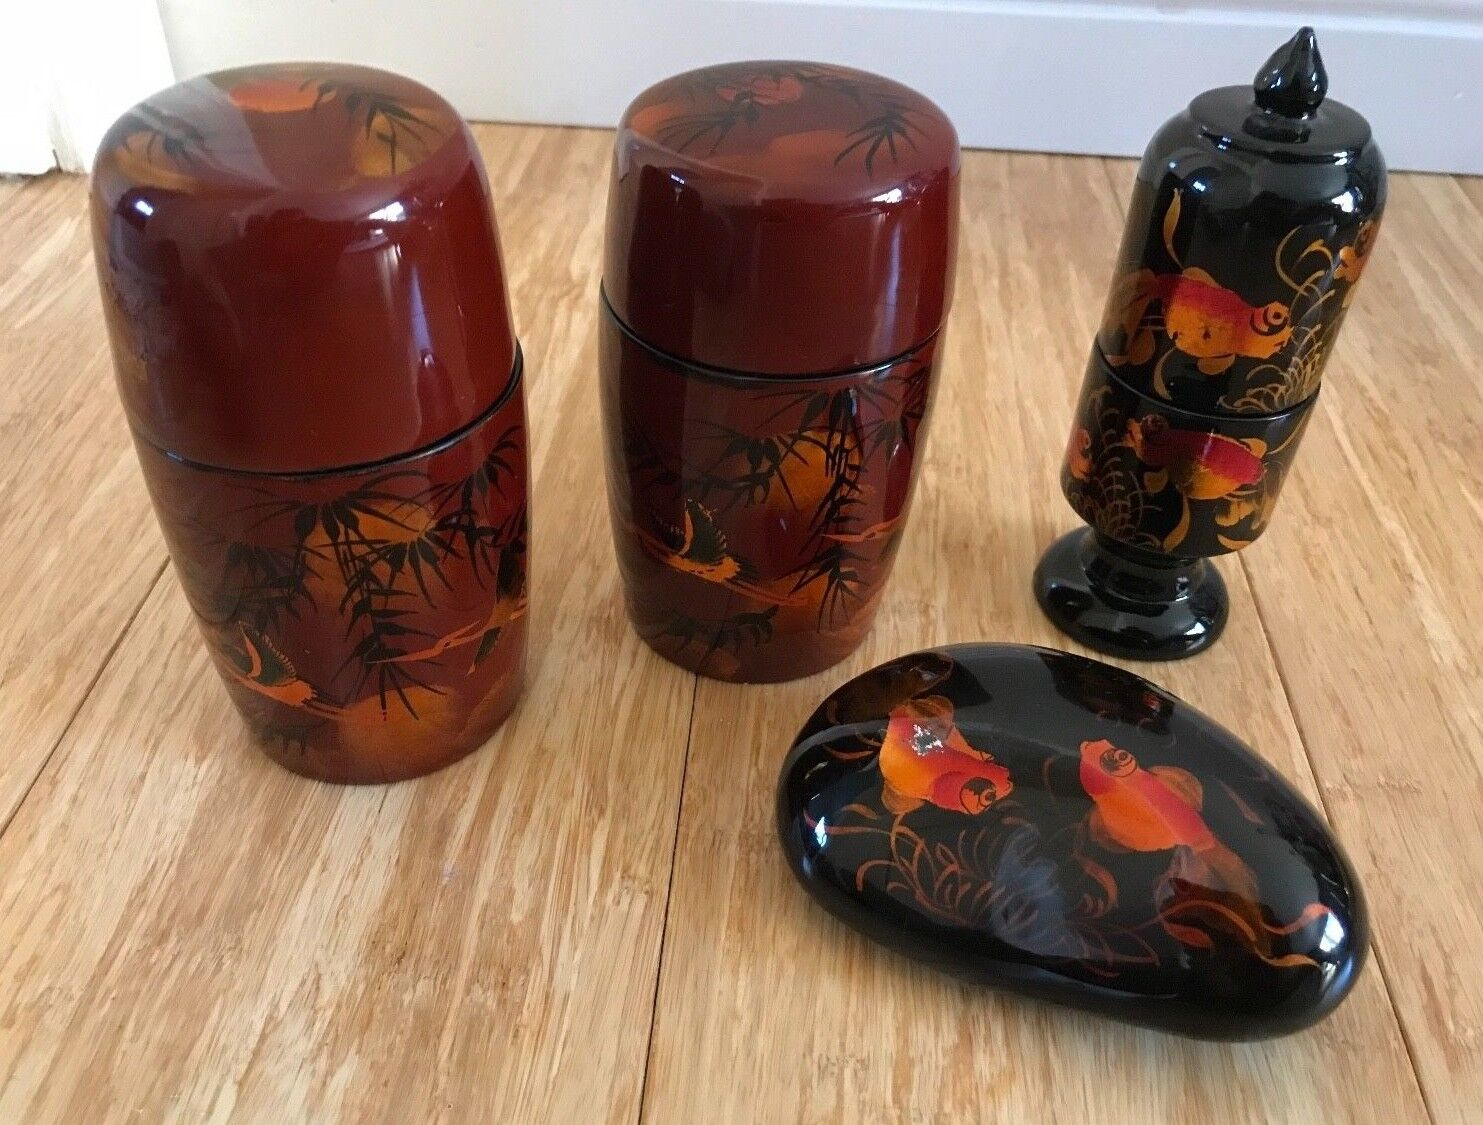 Lacquer Wood Tea Caddy Sets and Accessories